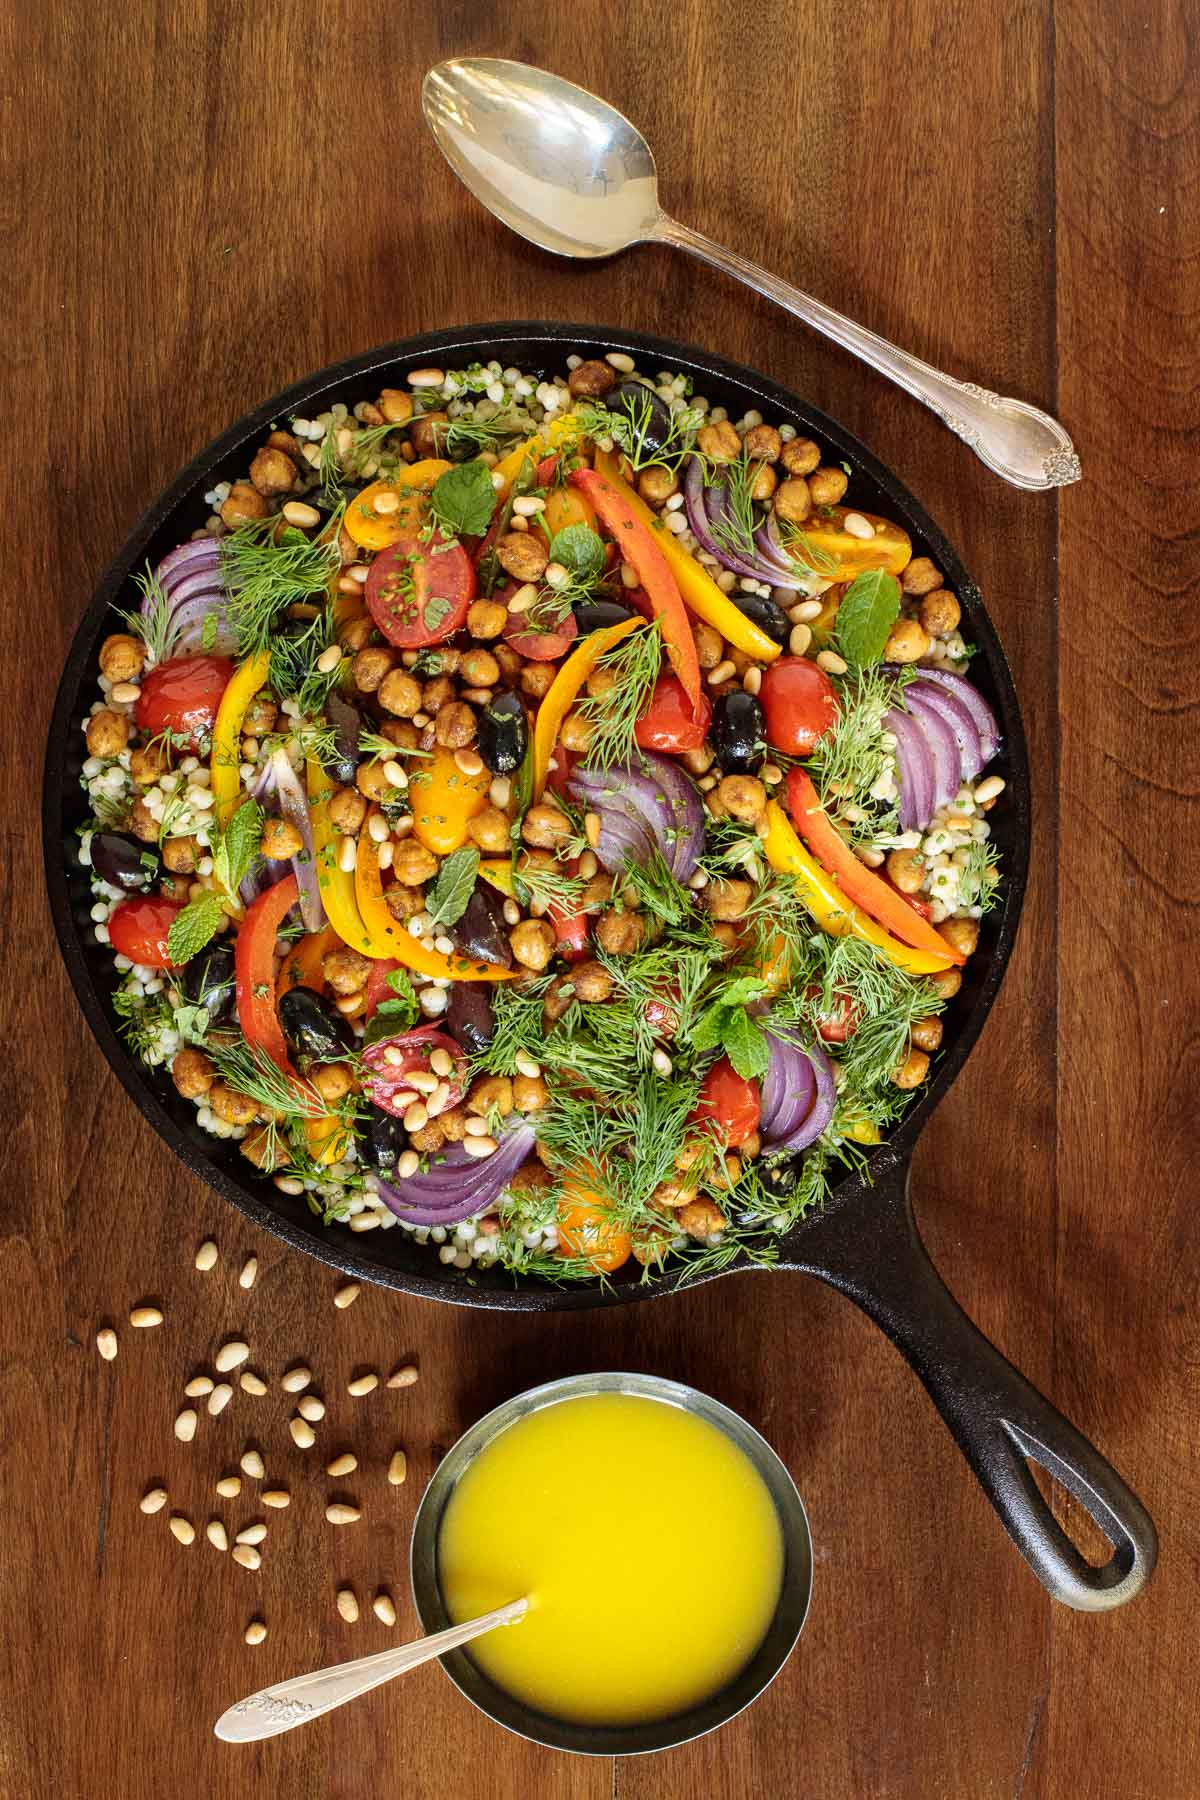 Overhead photo of a black cast iron skillet filled with Roasted Veggie and Crispy Chickpea Salad on a wood table.